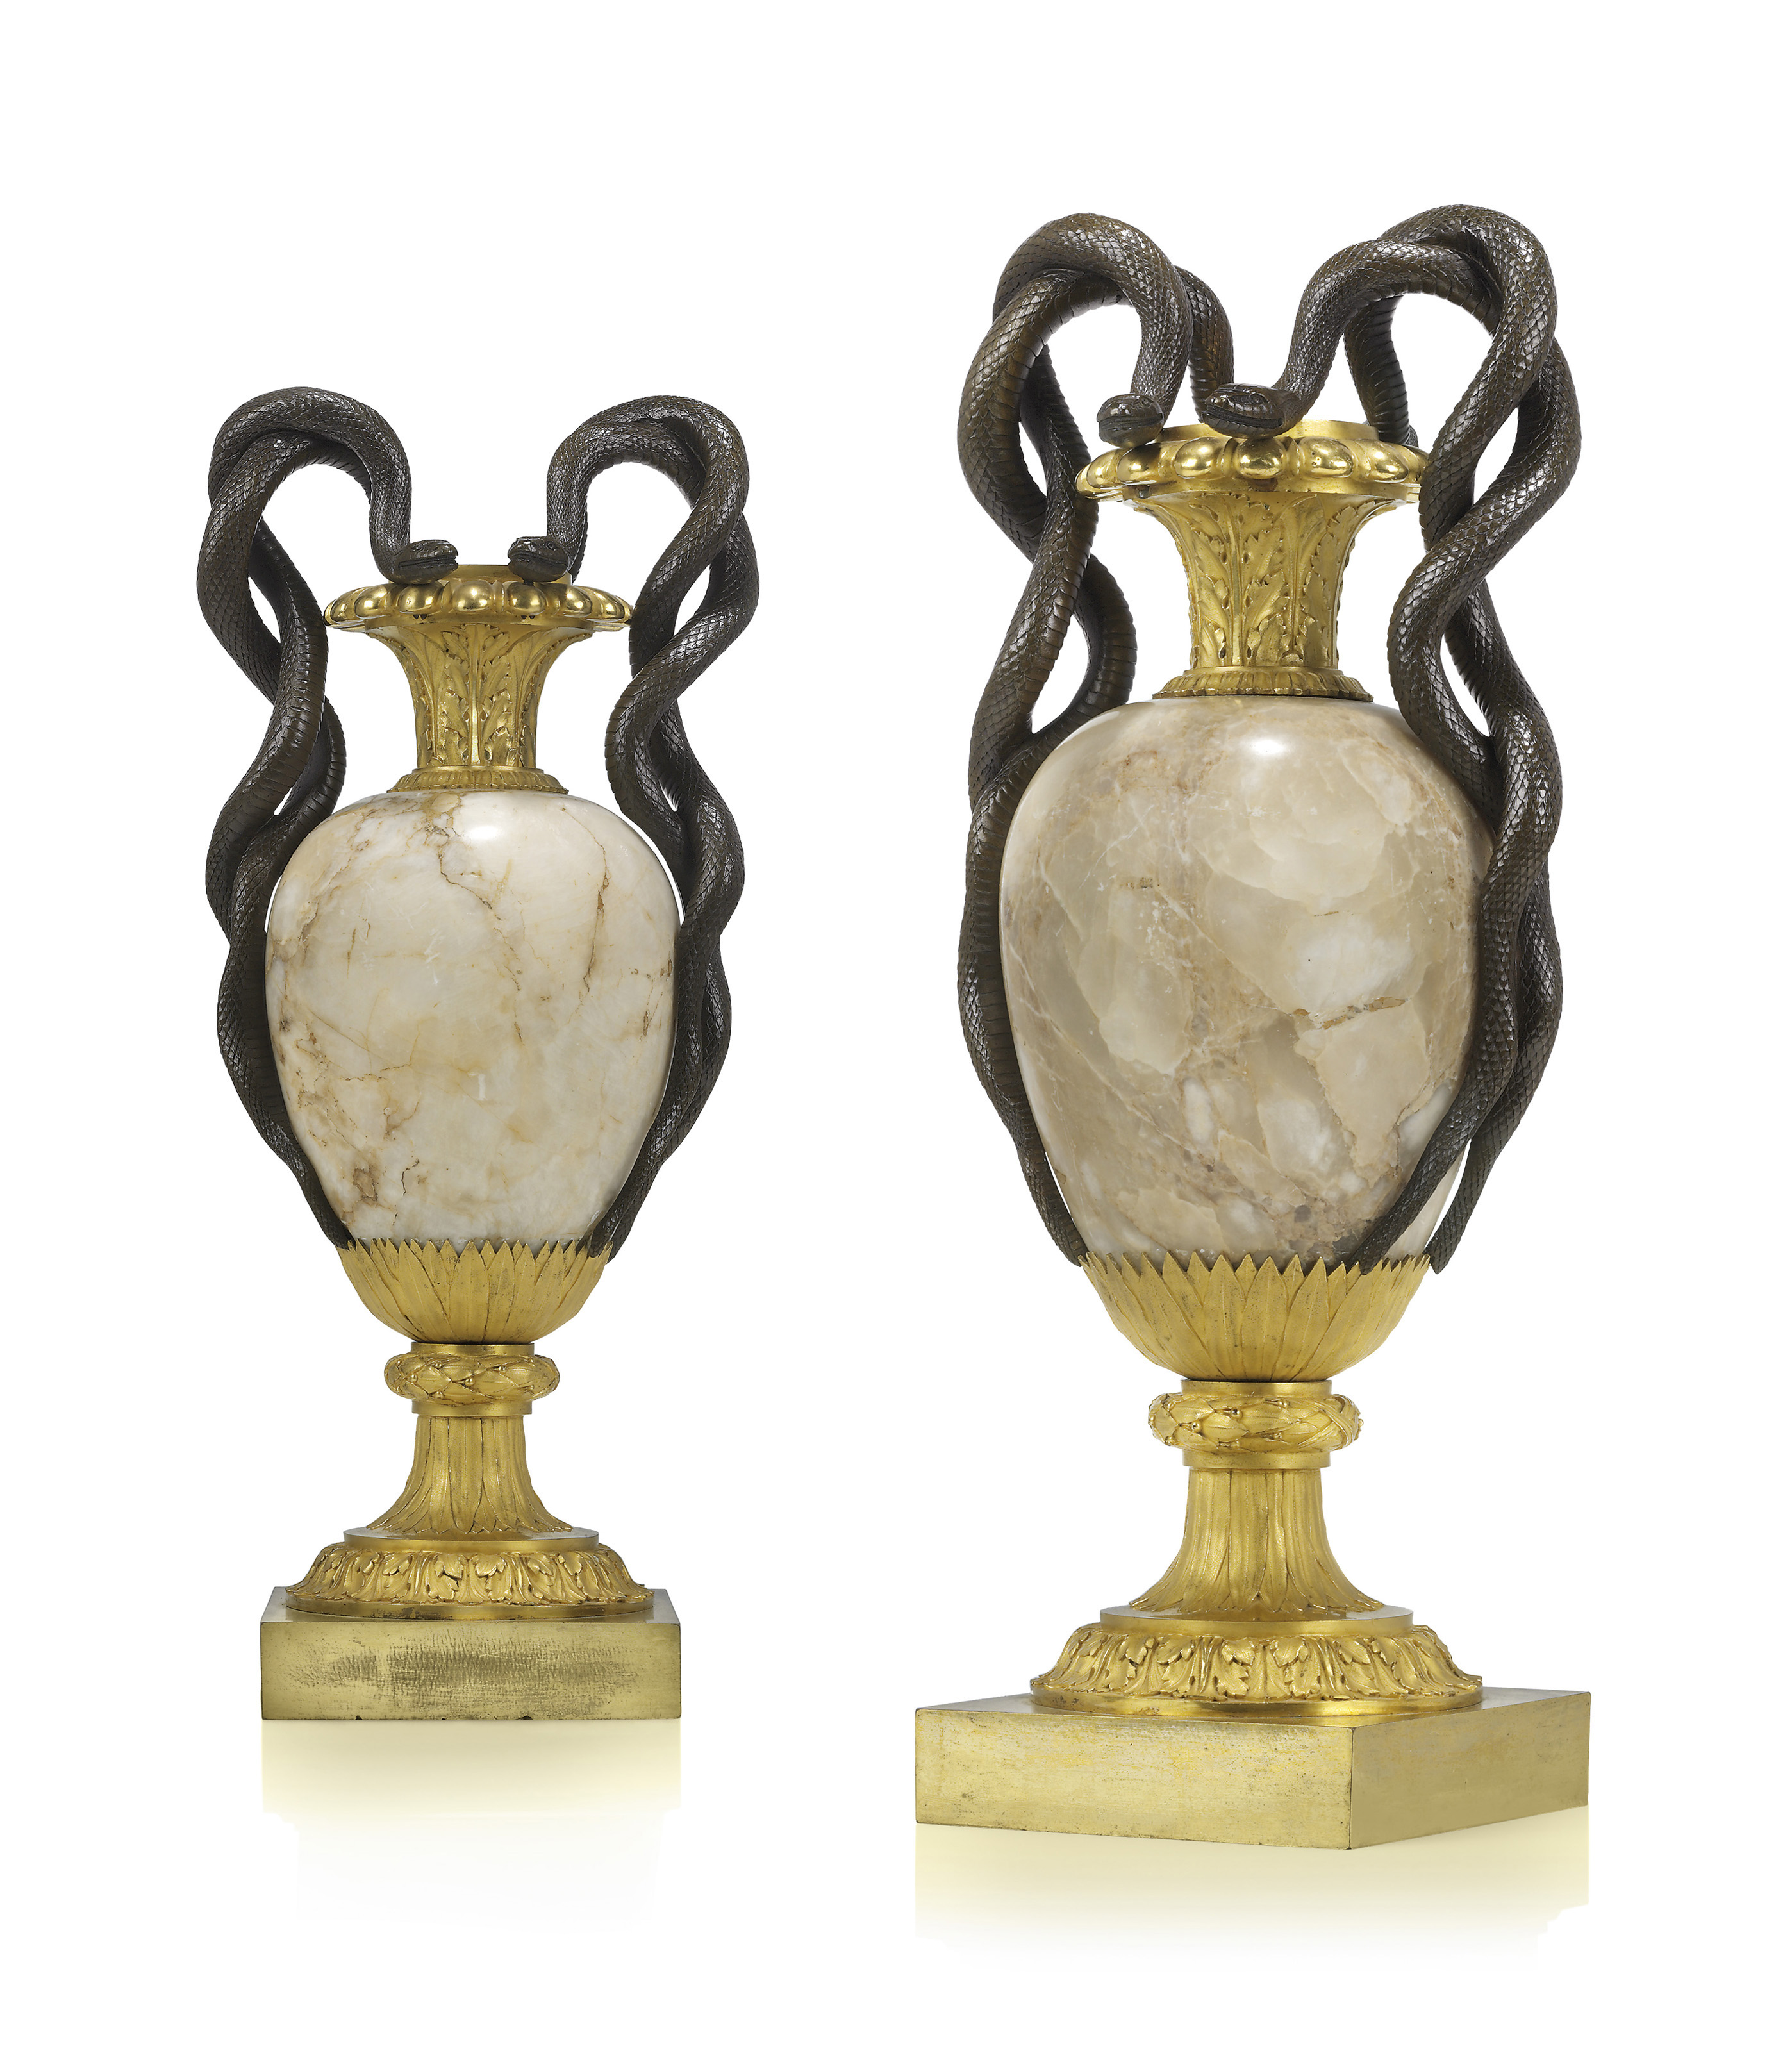 A PAIR OF LATE LOUIS XVI PATINATED-BRONZE AND ORMOLU